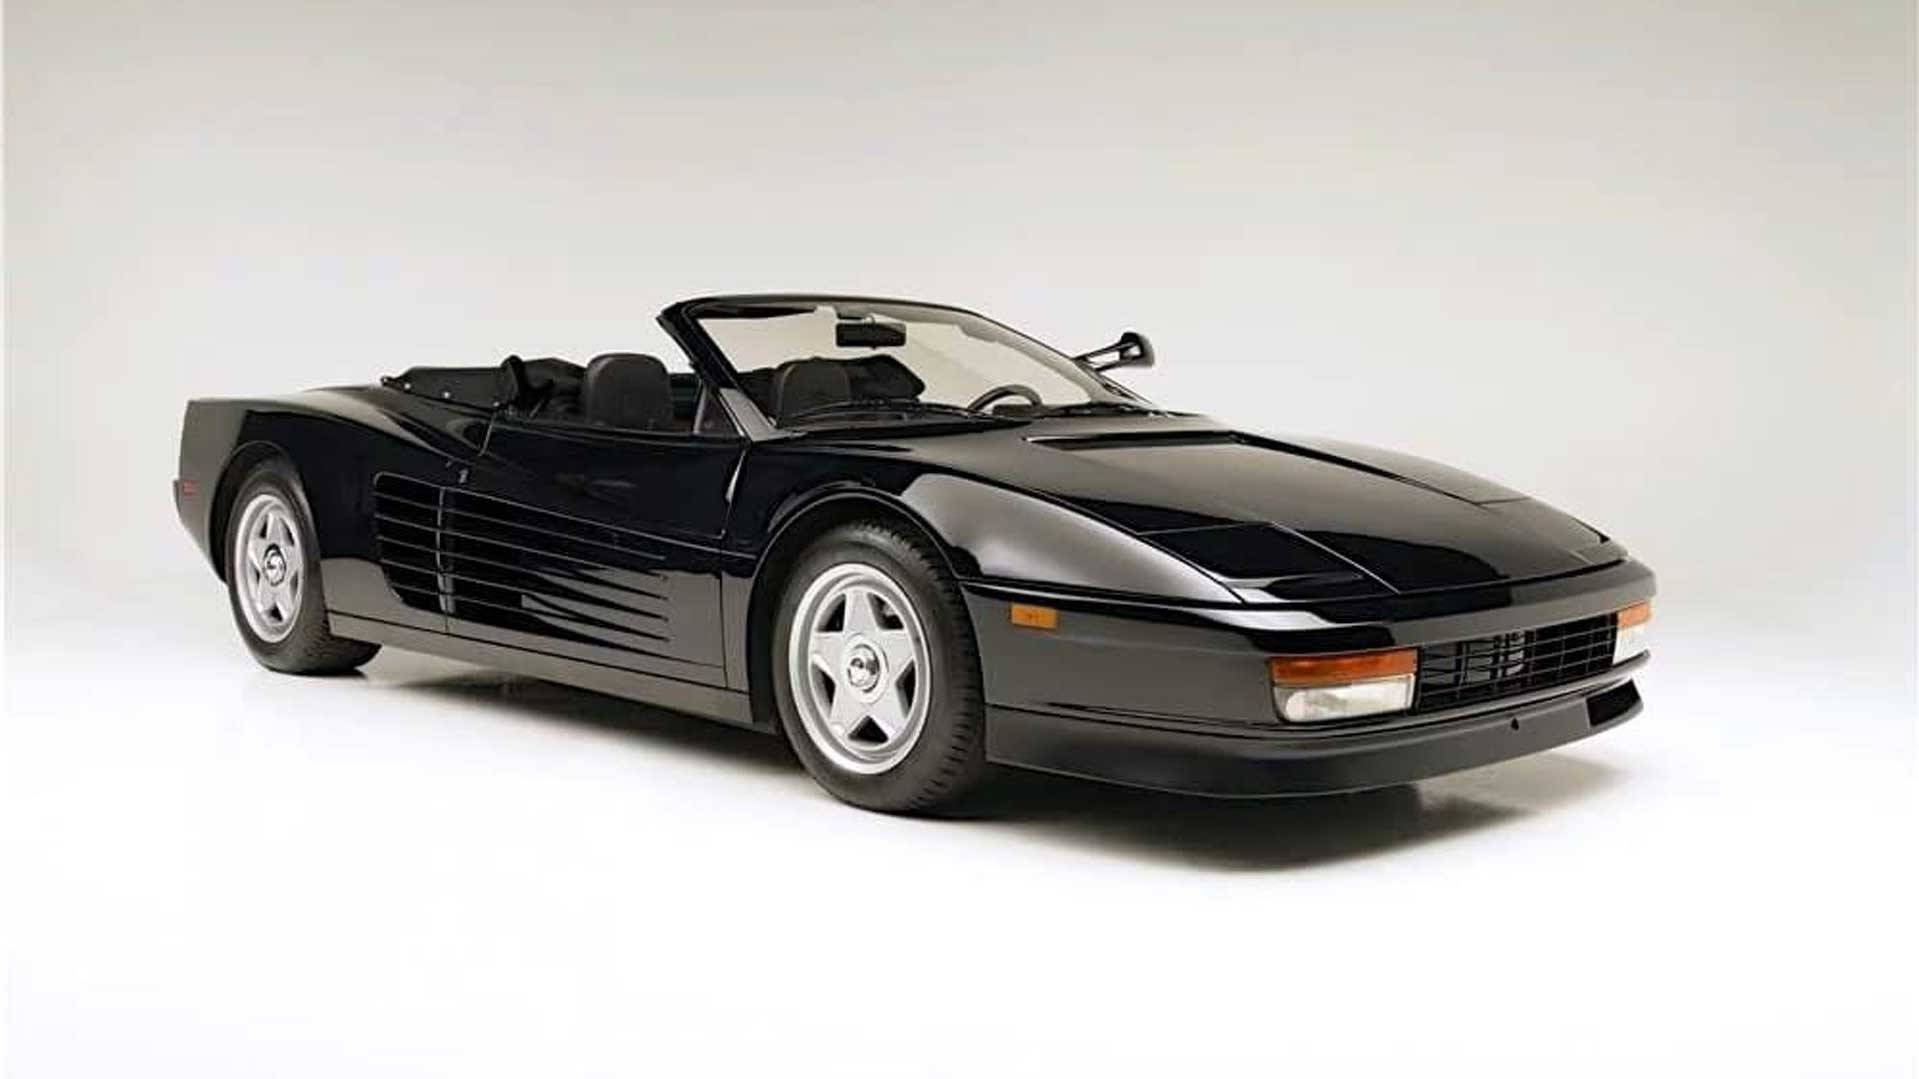 1986 Ferrari Testarossa convertible built for Michael Jackson commercial